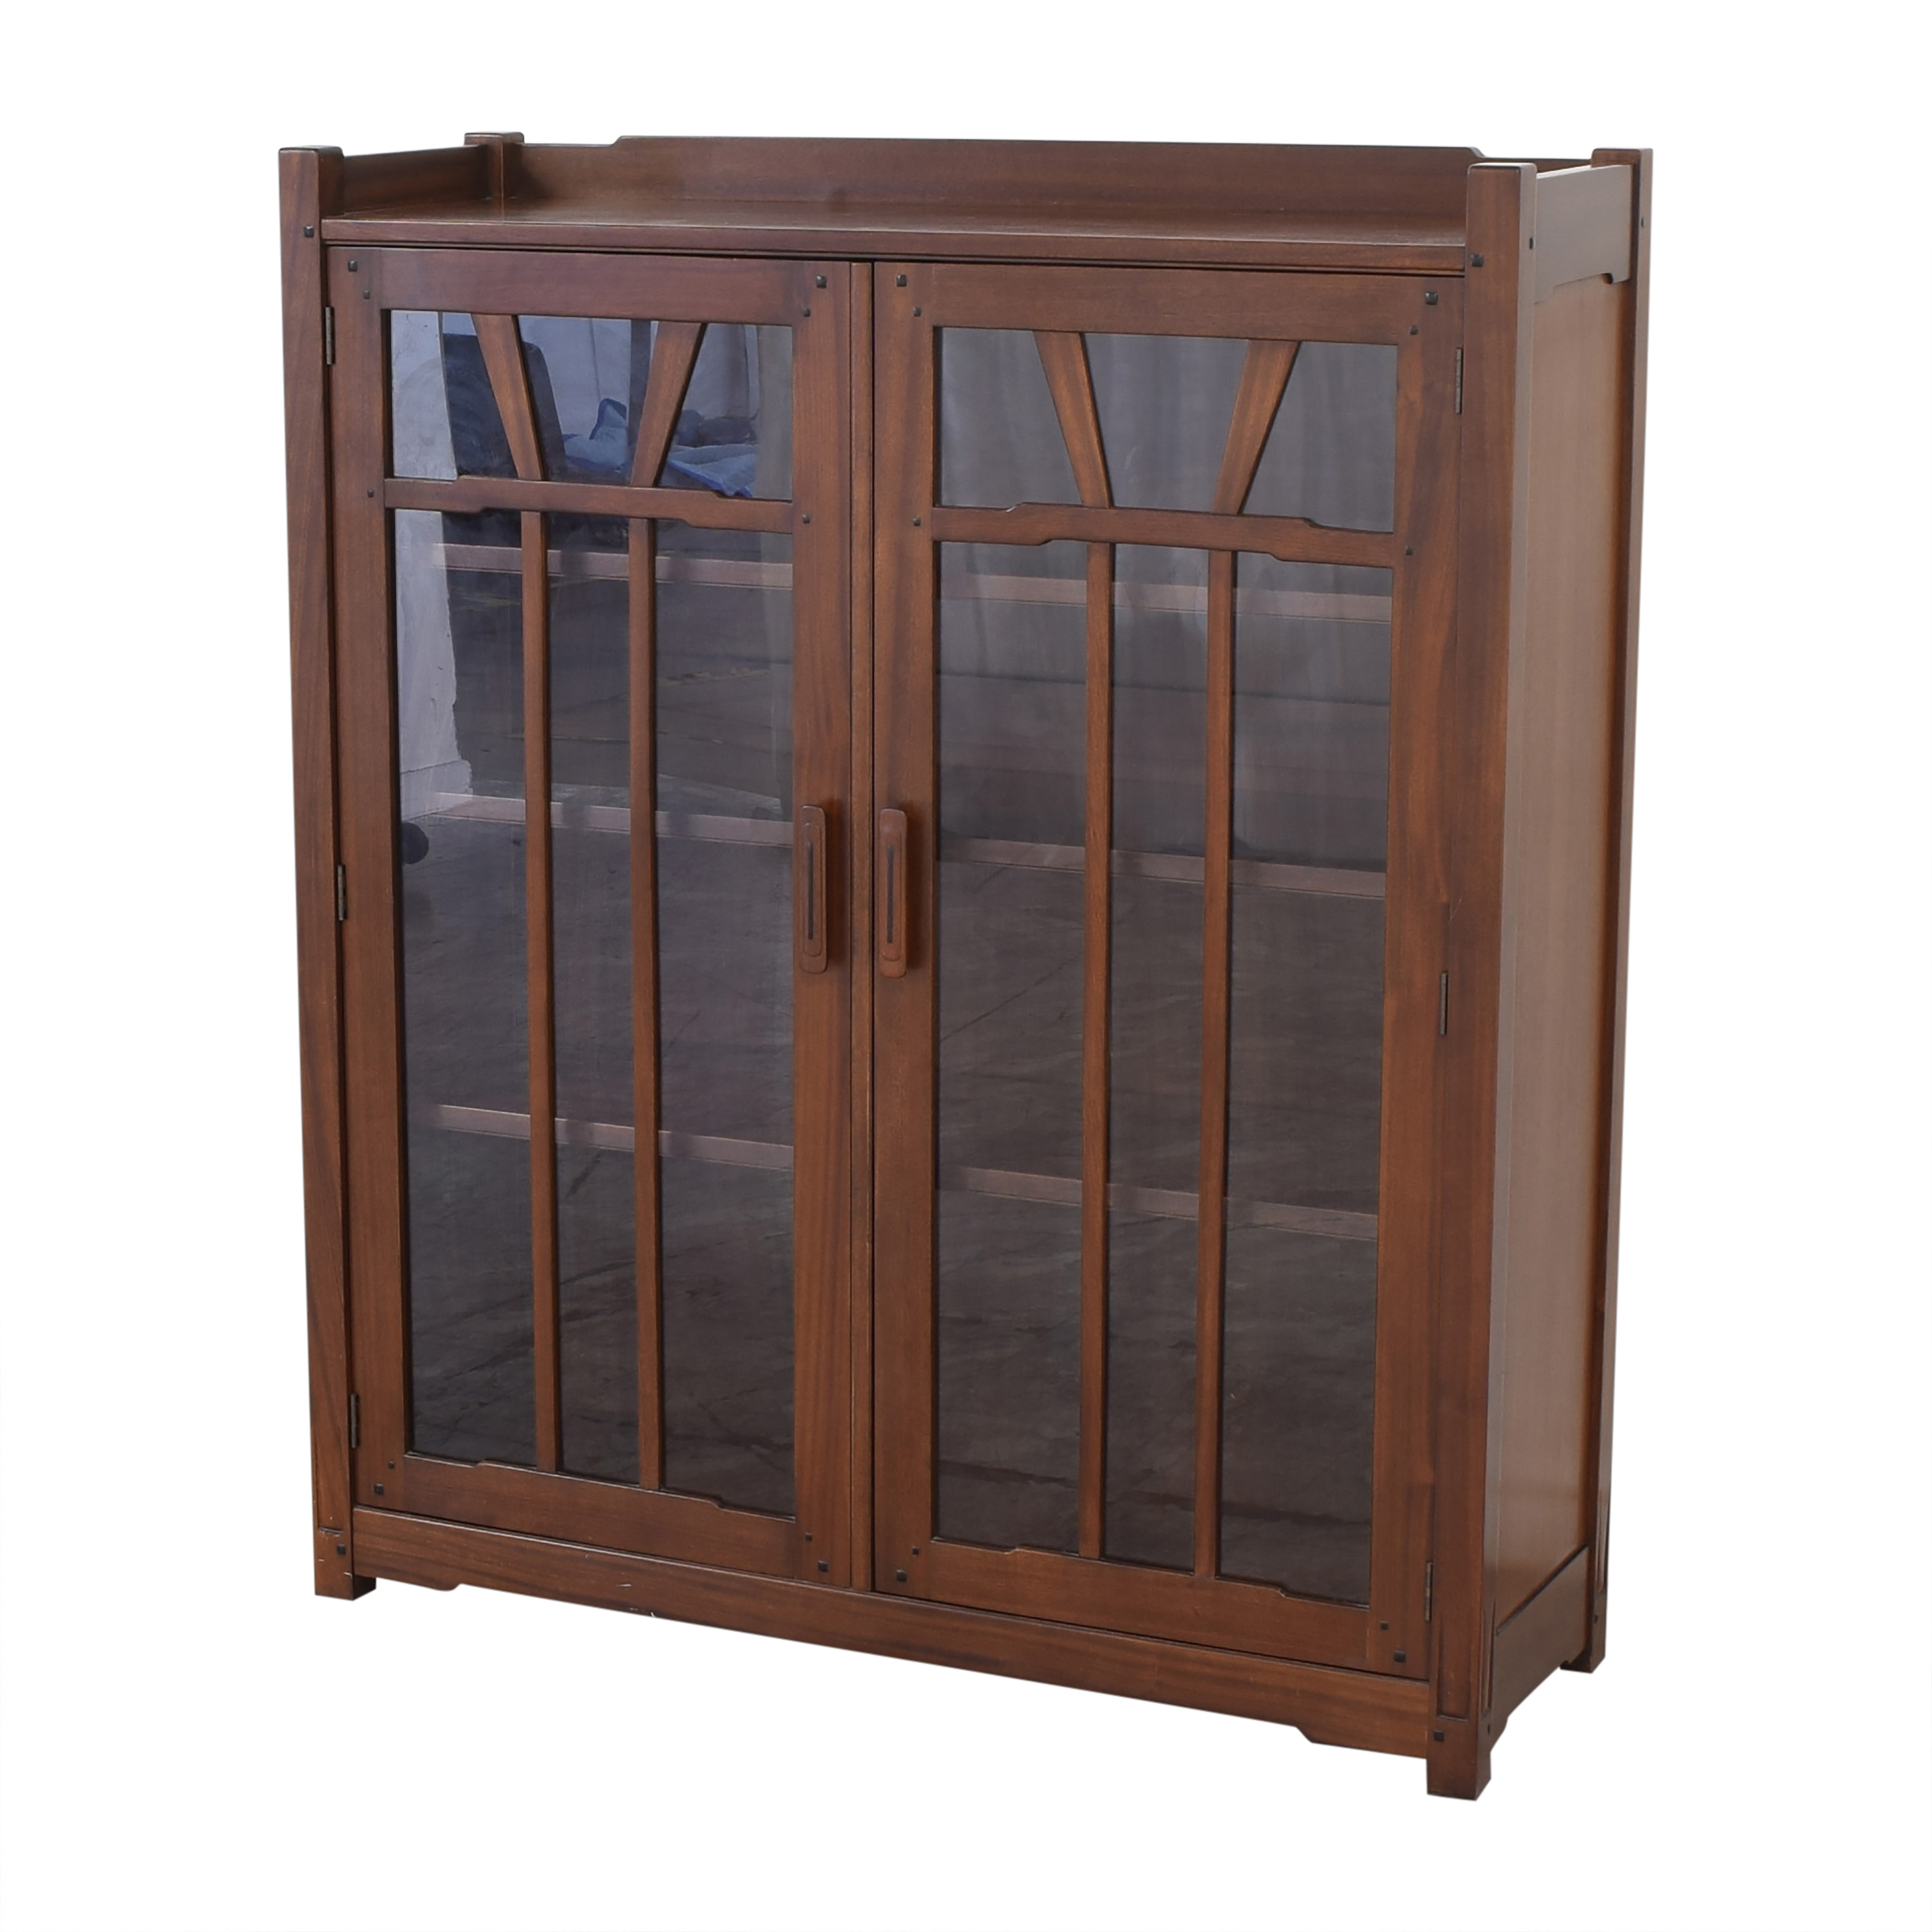 Stickley Furniture Stickley Gamble House Bookcase second hand